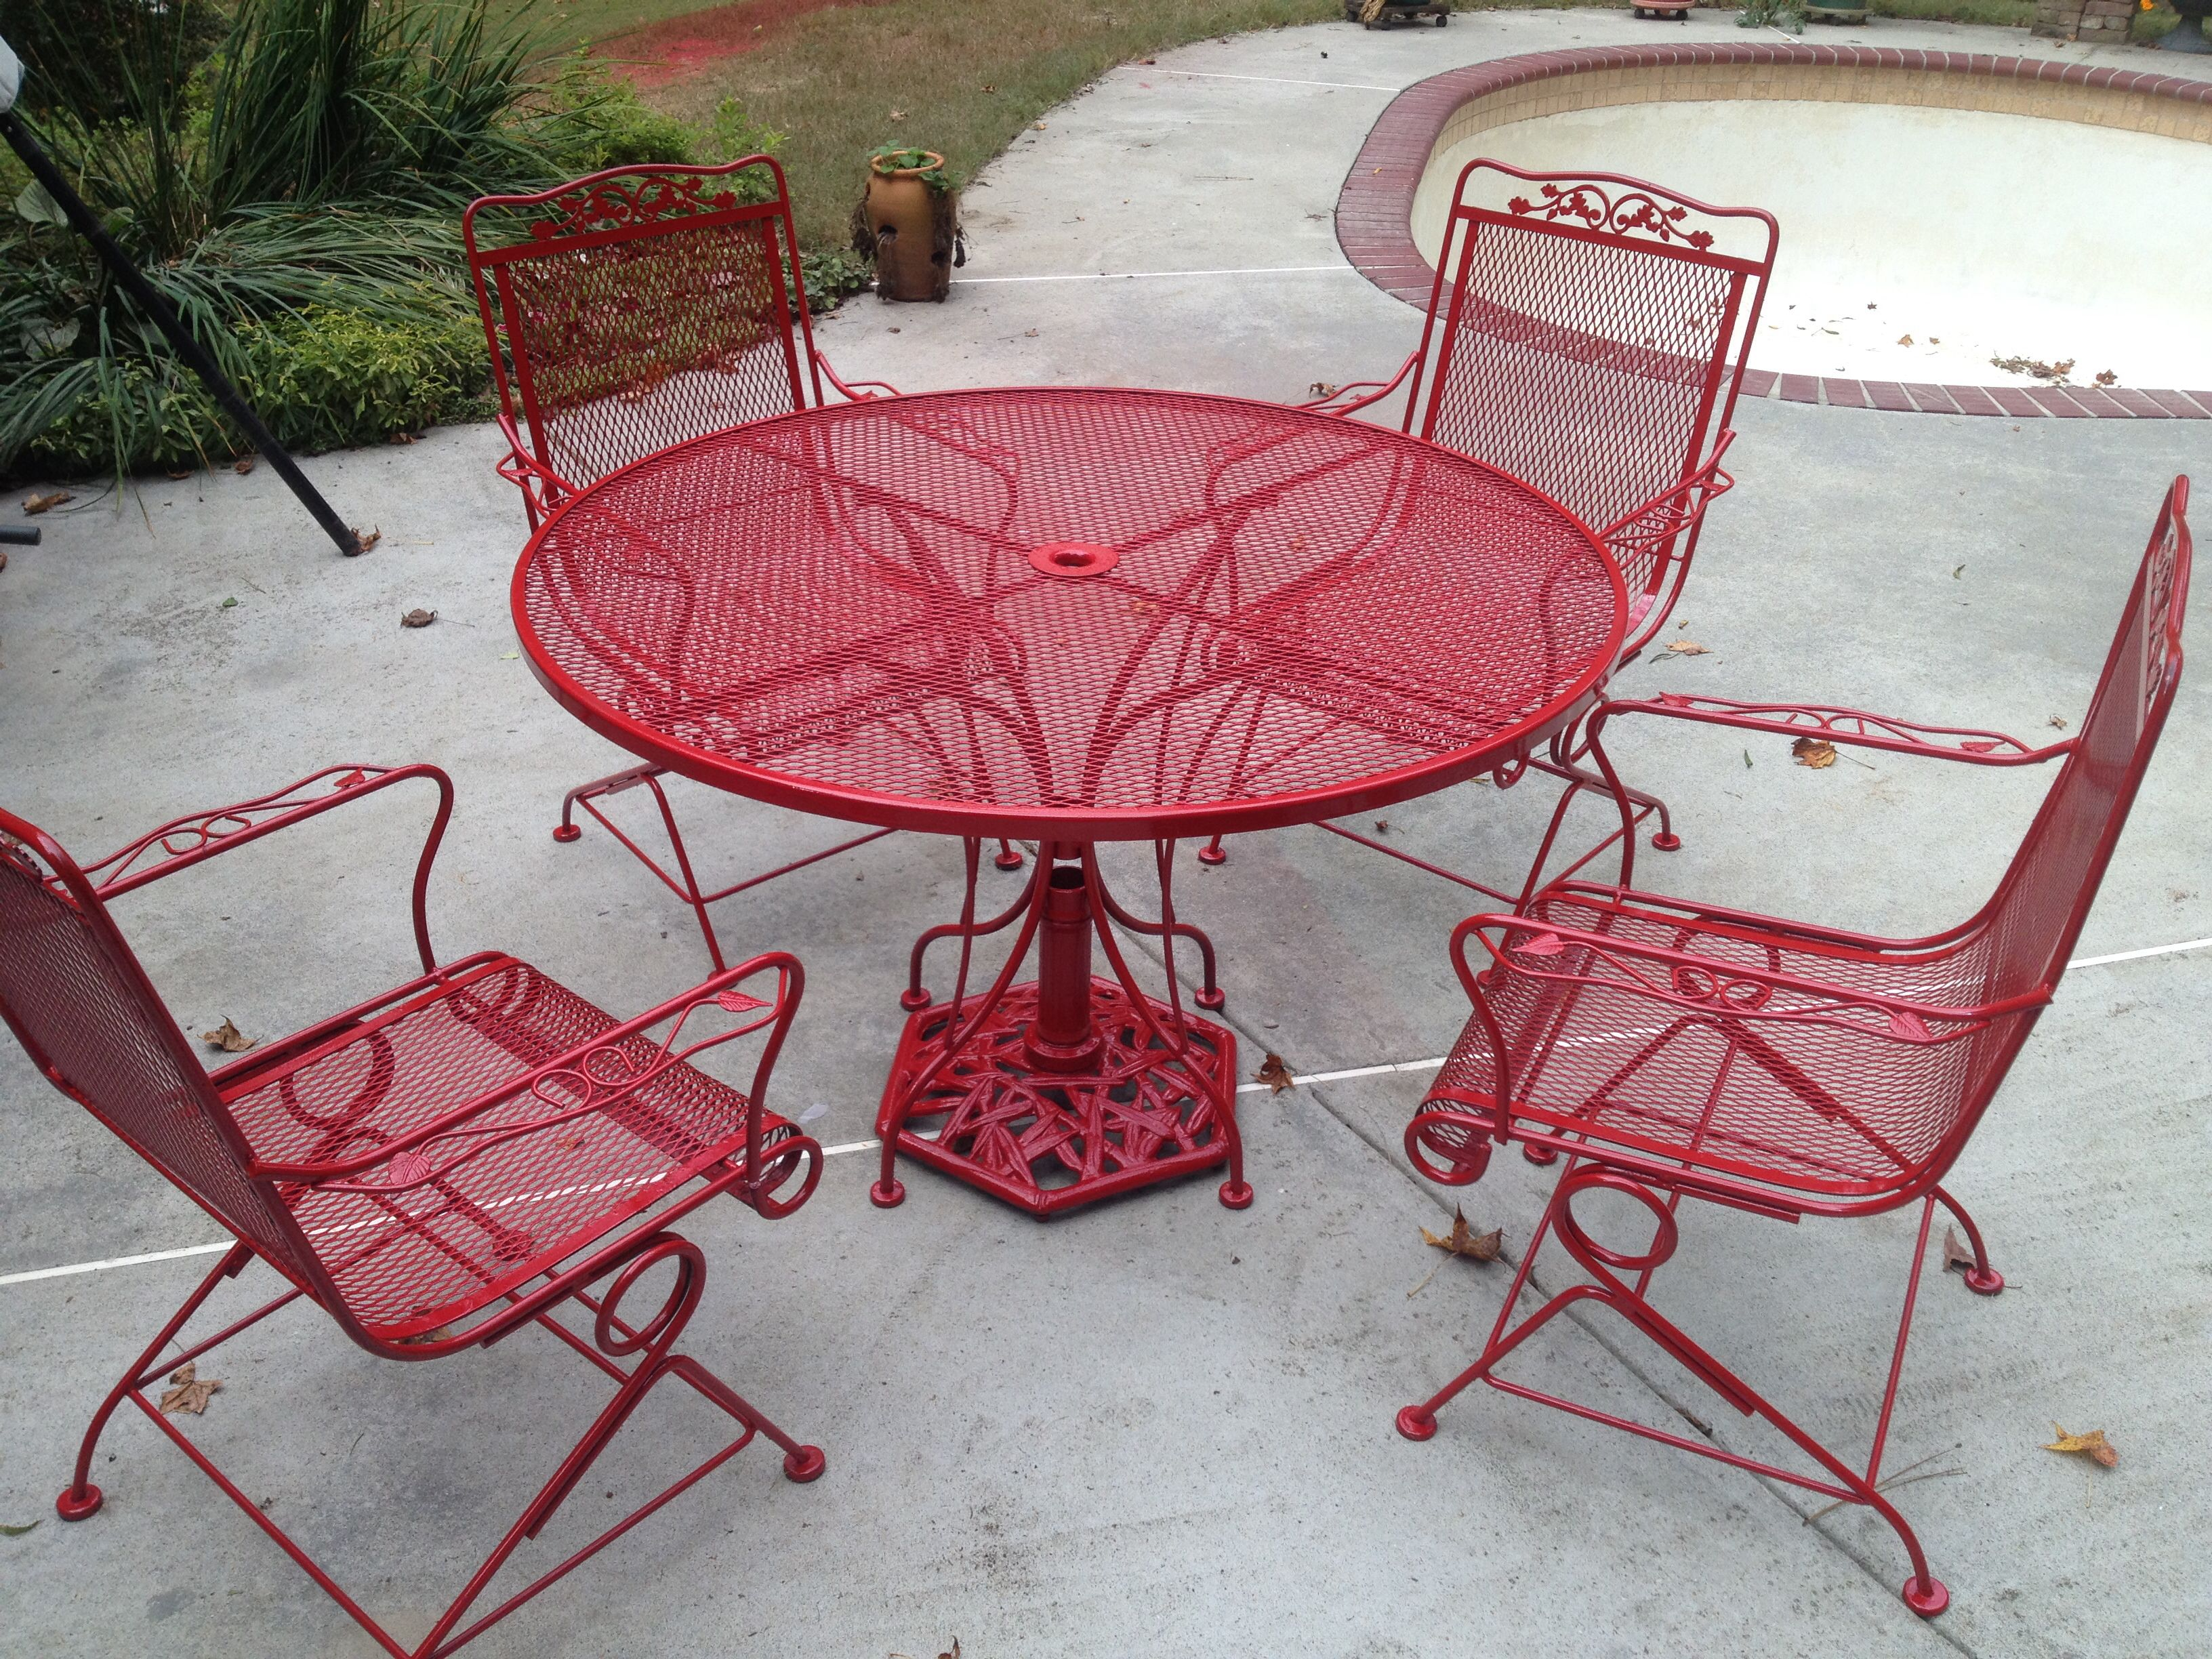 Painted iron patio furniture - Painted Patio Furniture Kensie Suggested Red And This Is How It Would Look